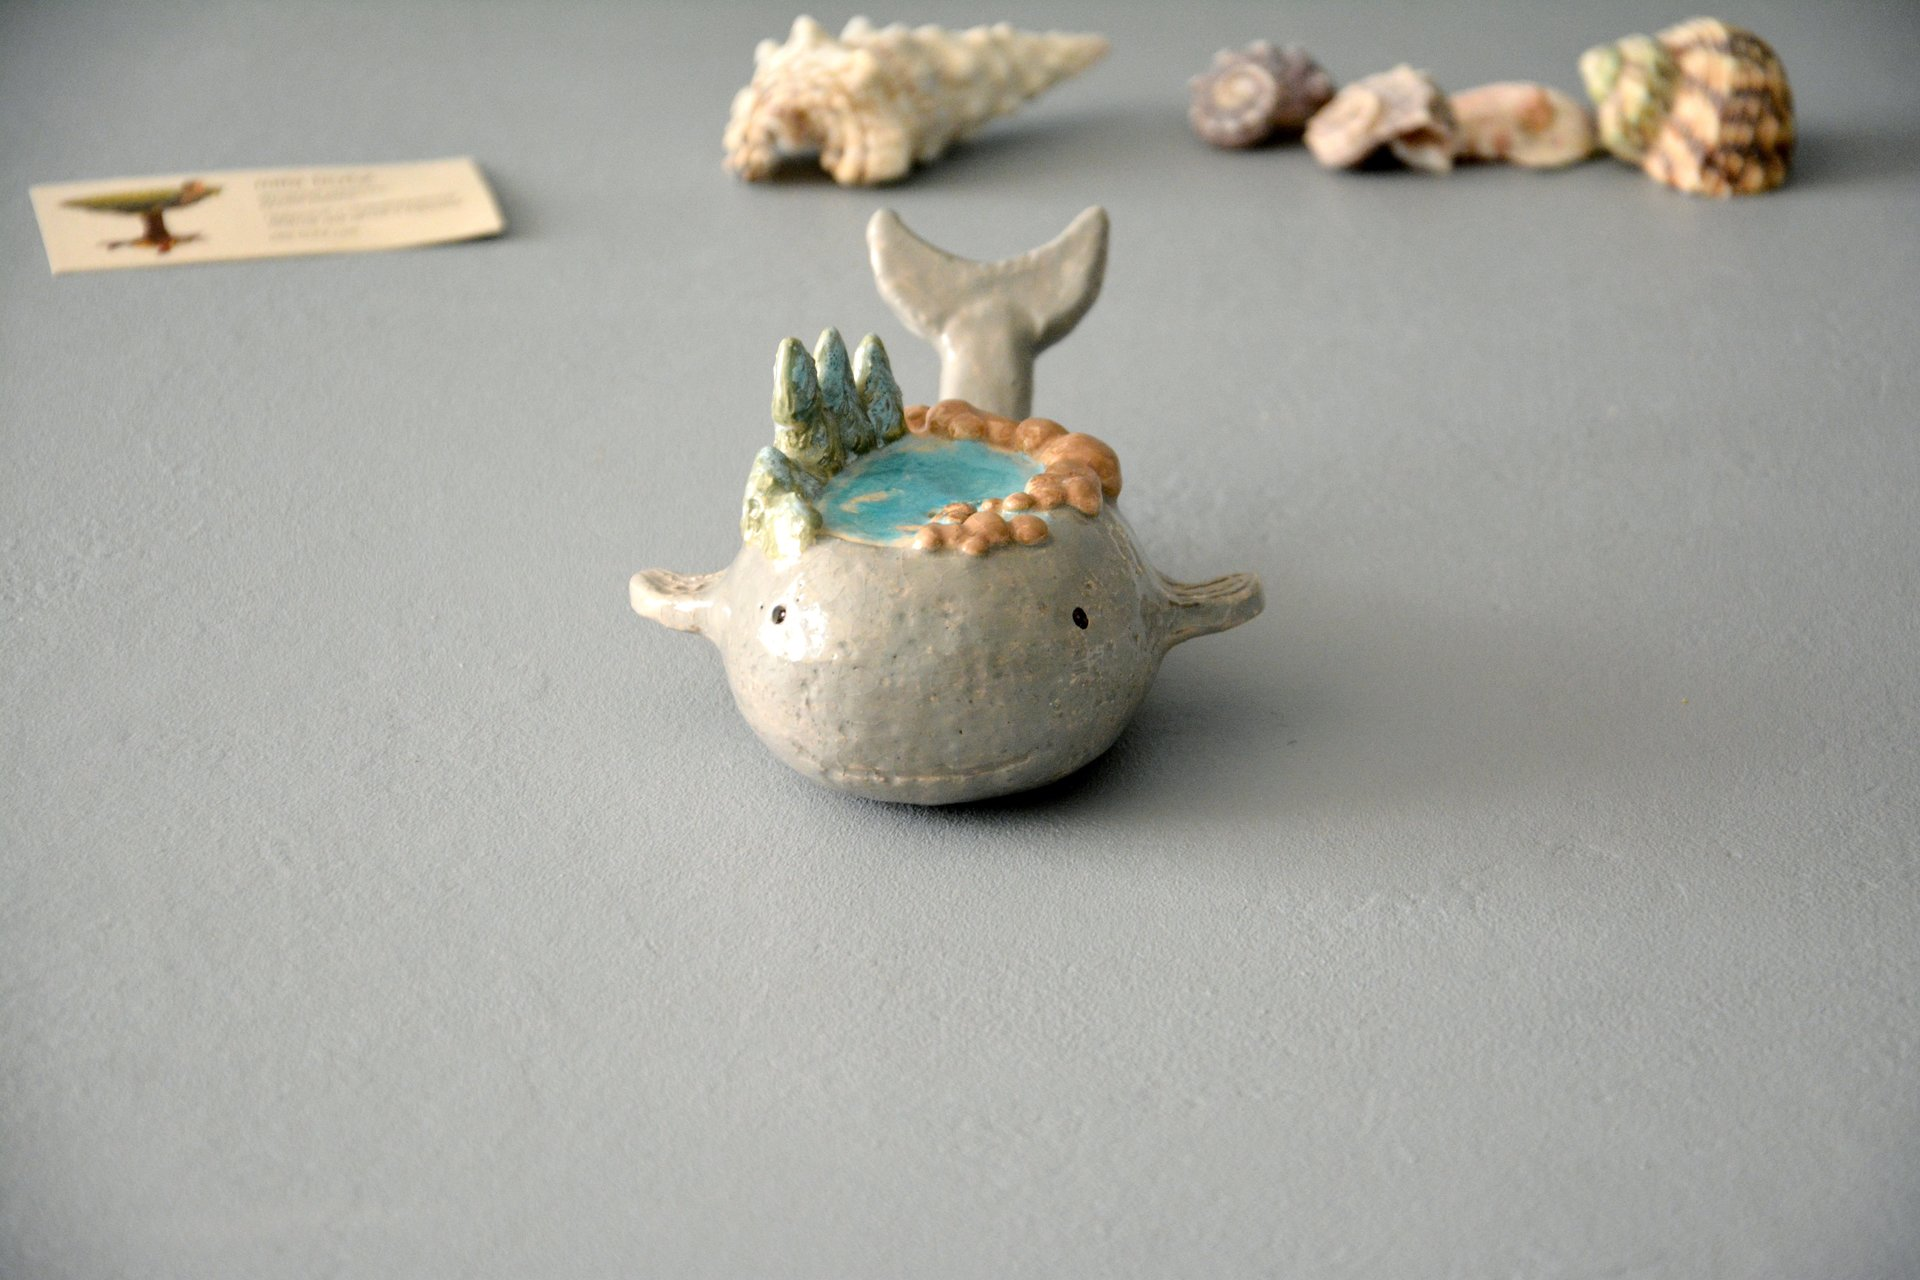 Little whale - Ceramic fishes, height - 5 cm, photo 3 of 5.